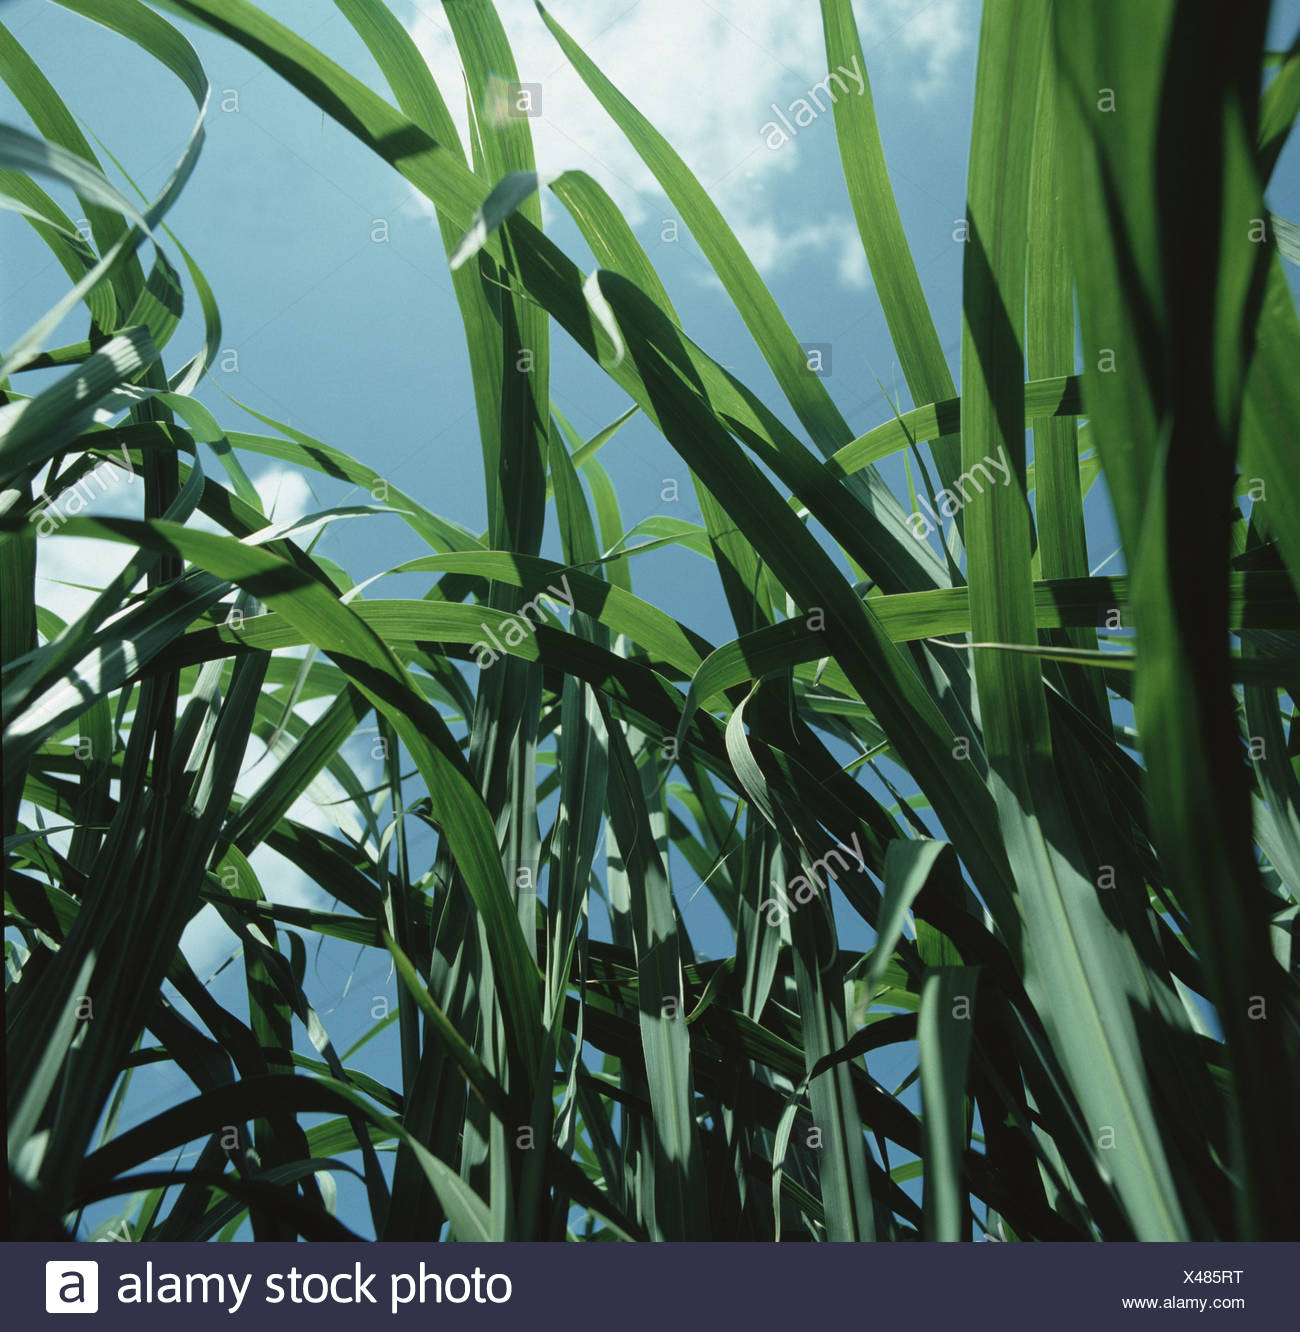 Maturing elephant grass Miscanthus sp grown as a crop to provide a sustainable fuel source - Stock Image